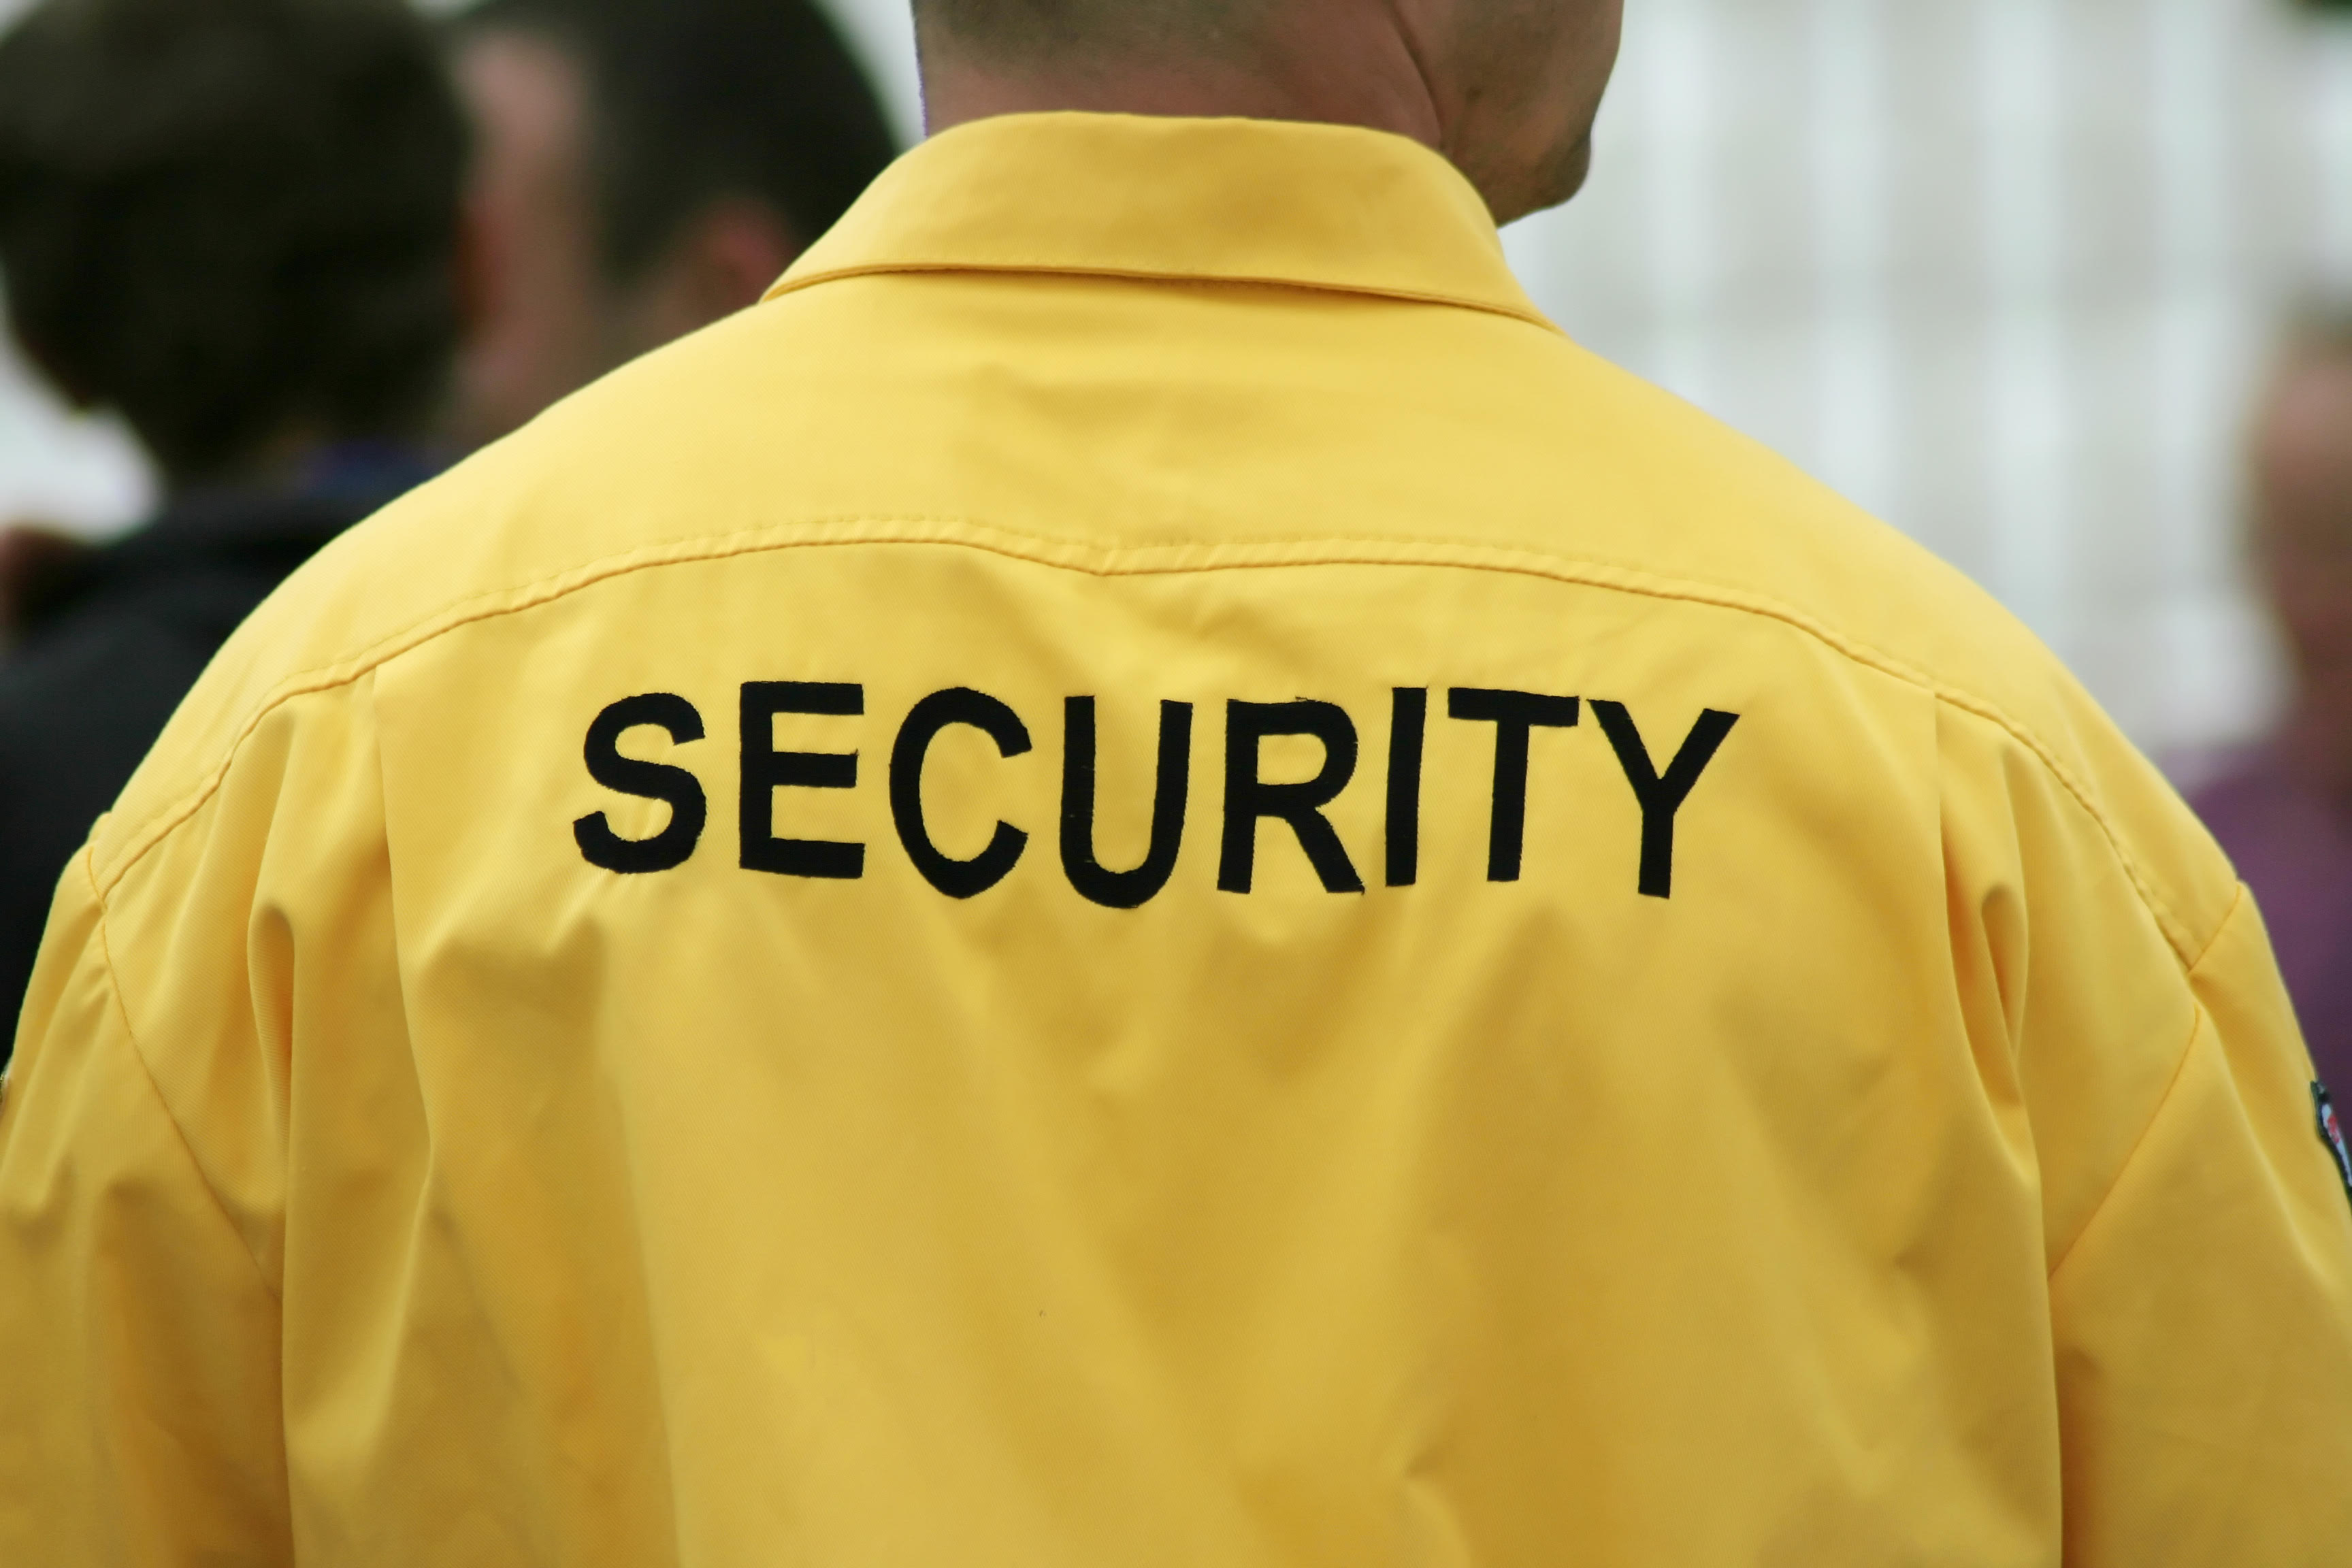 SECURITY GUARD TRAINING COURSES OFFERED AT ROCKLAND COMMUNITY COLLEGE